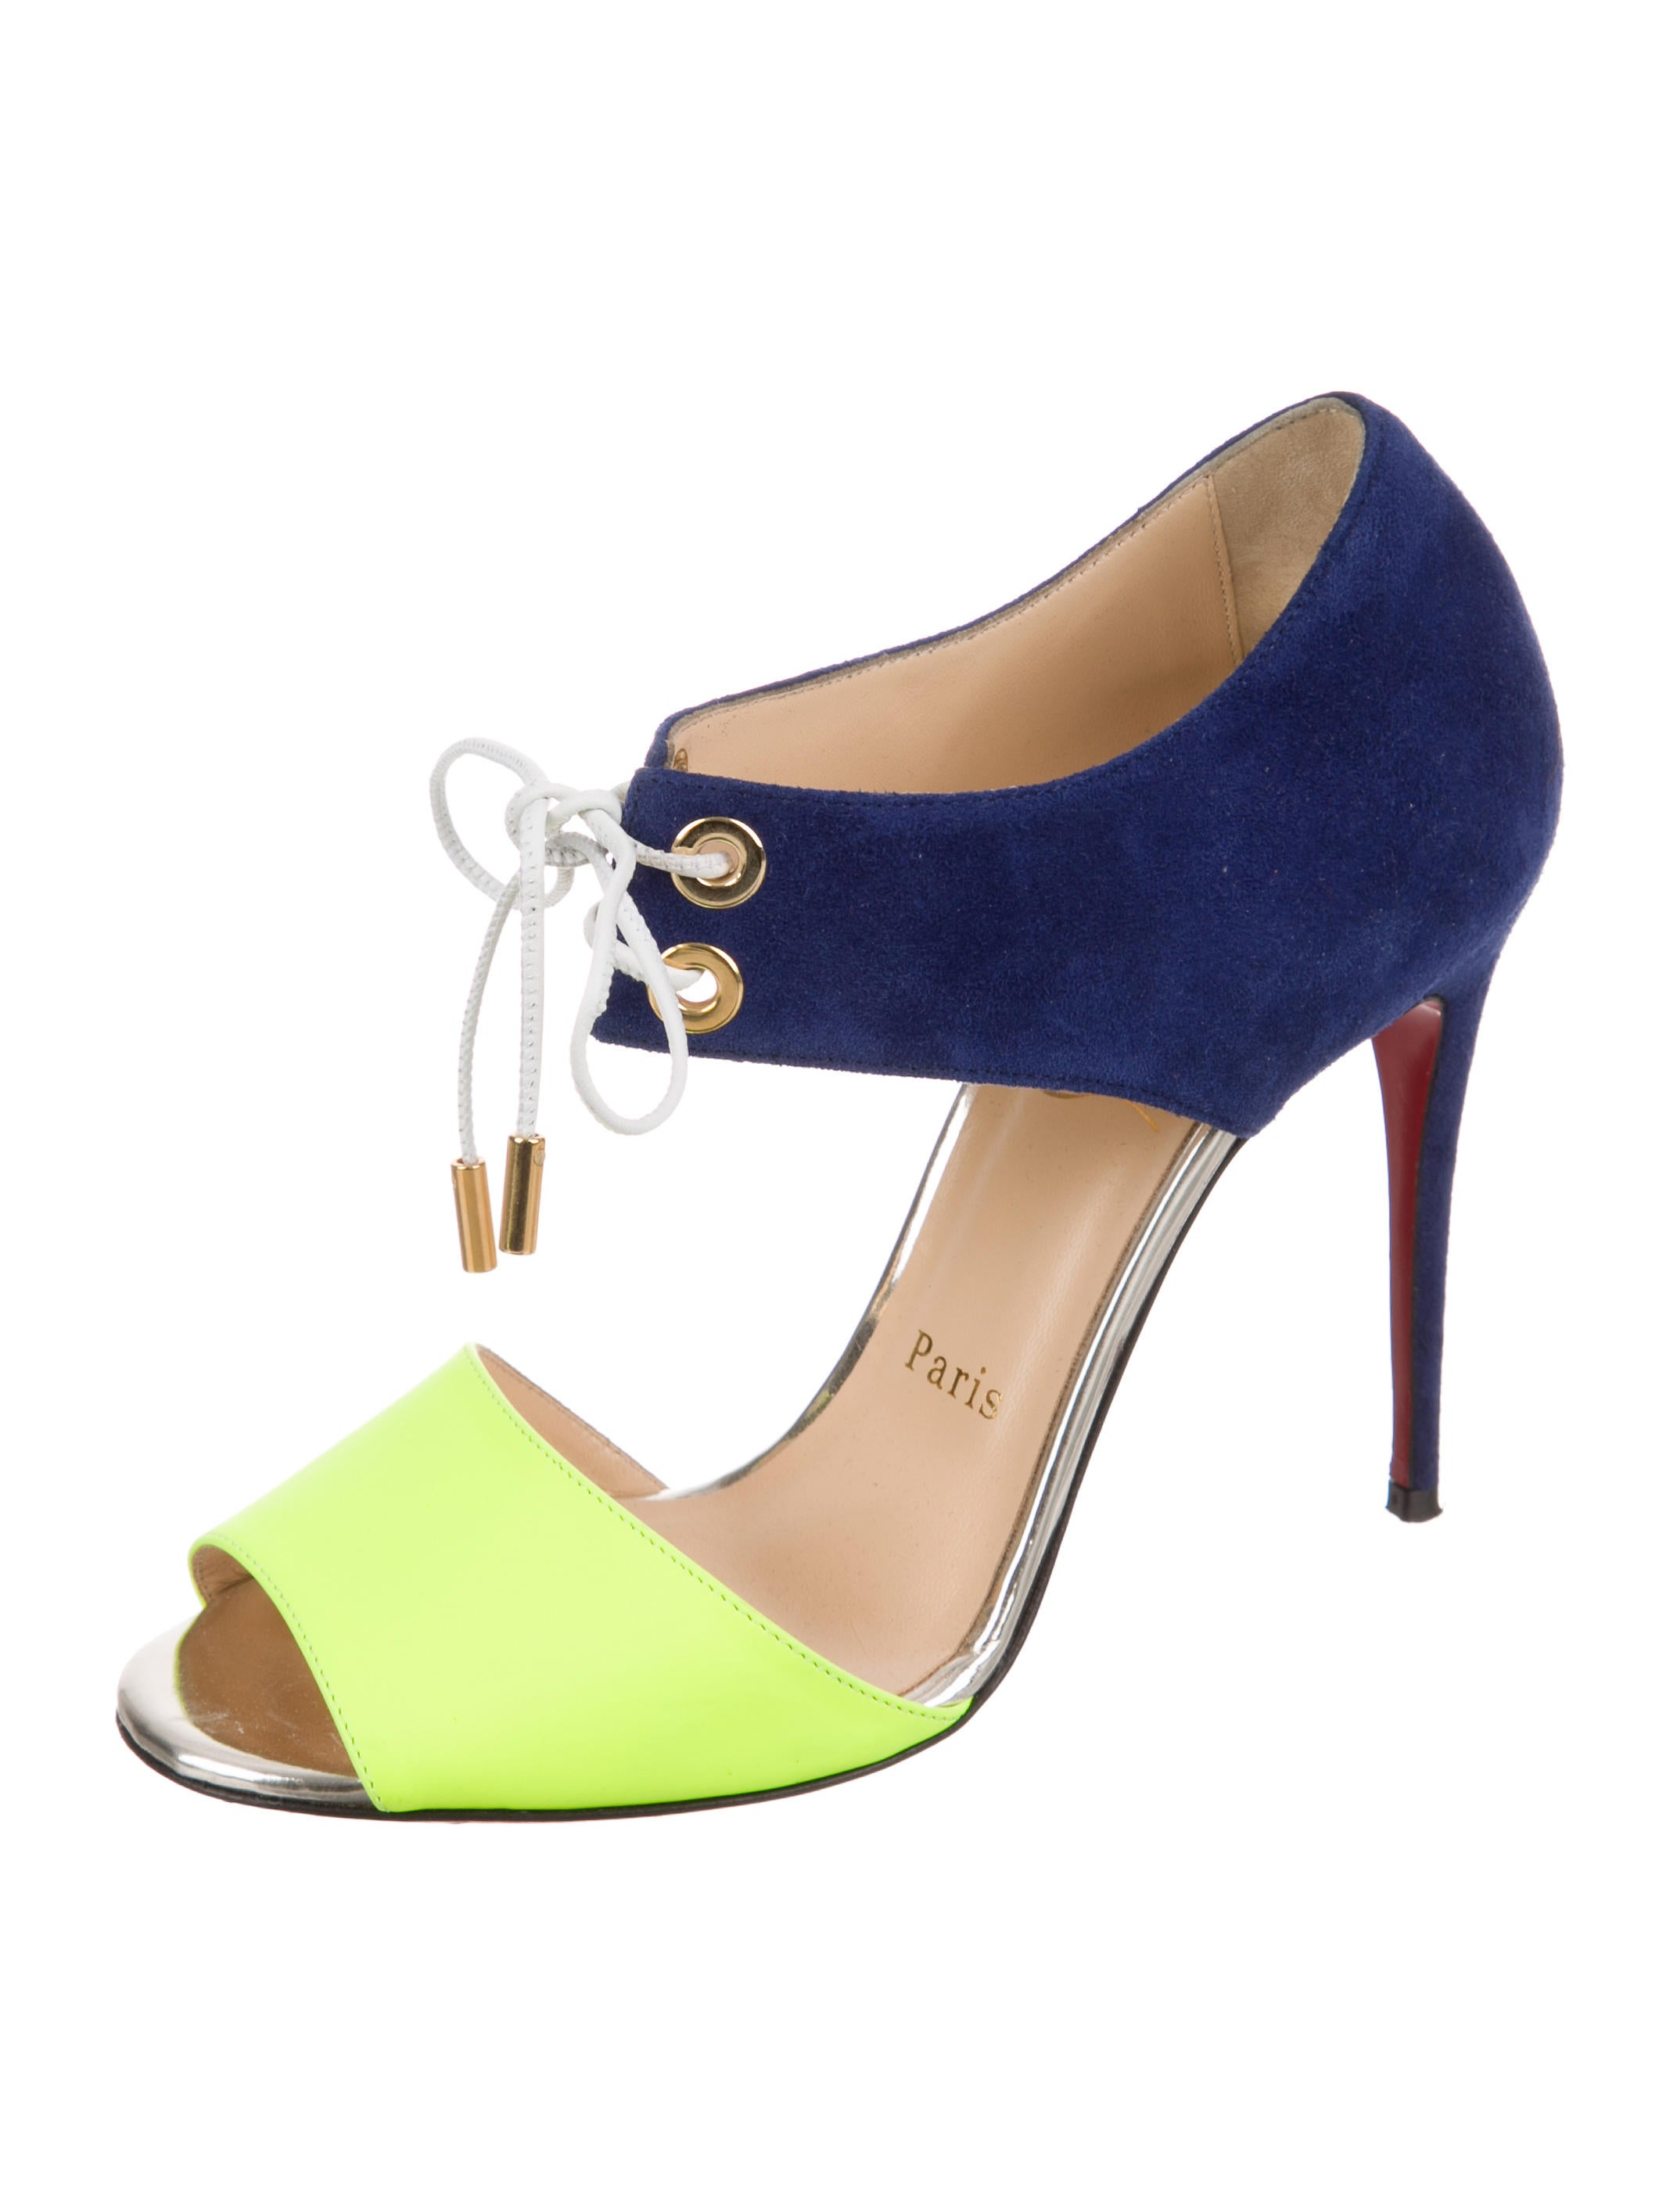 recommend online Christian Louboutin Tititata 55 Peep-Toe Pumps discount in China outlet release dates 100% original for sale NZs7Vm